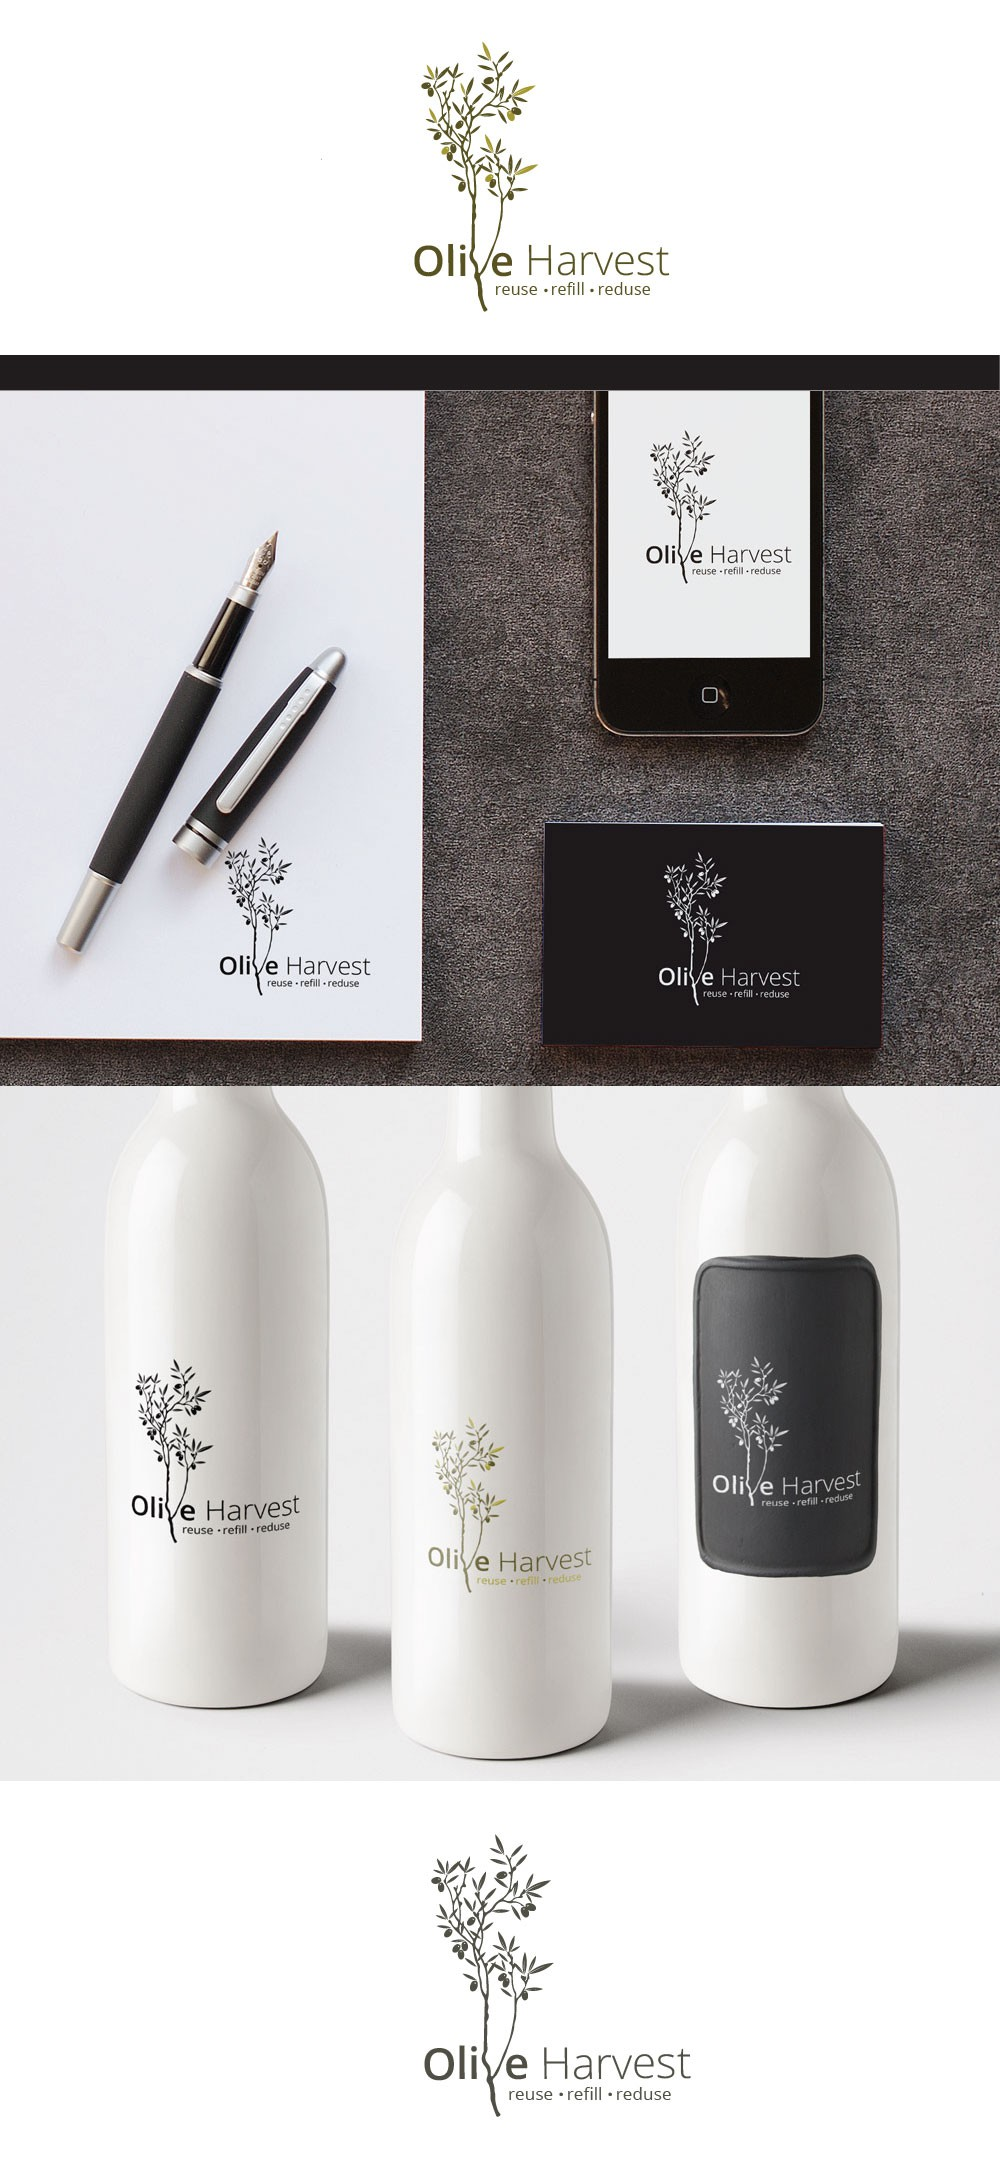 Create a fresh modern rustic brand image for a sustainable olive oil market business -  Olive Harvest